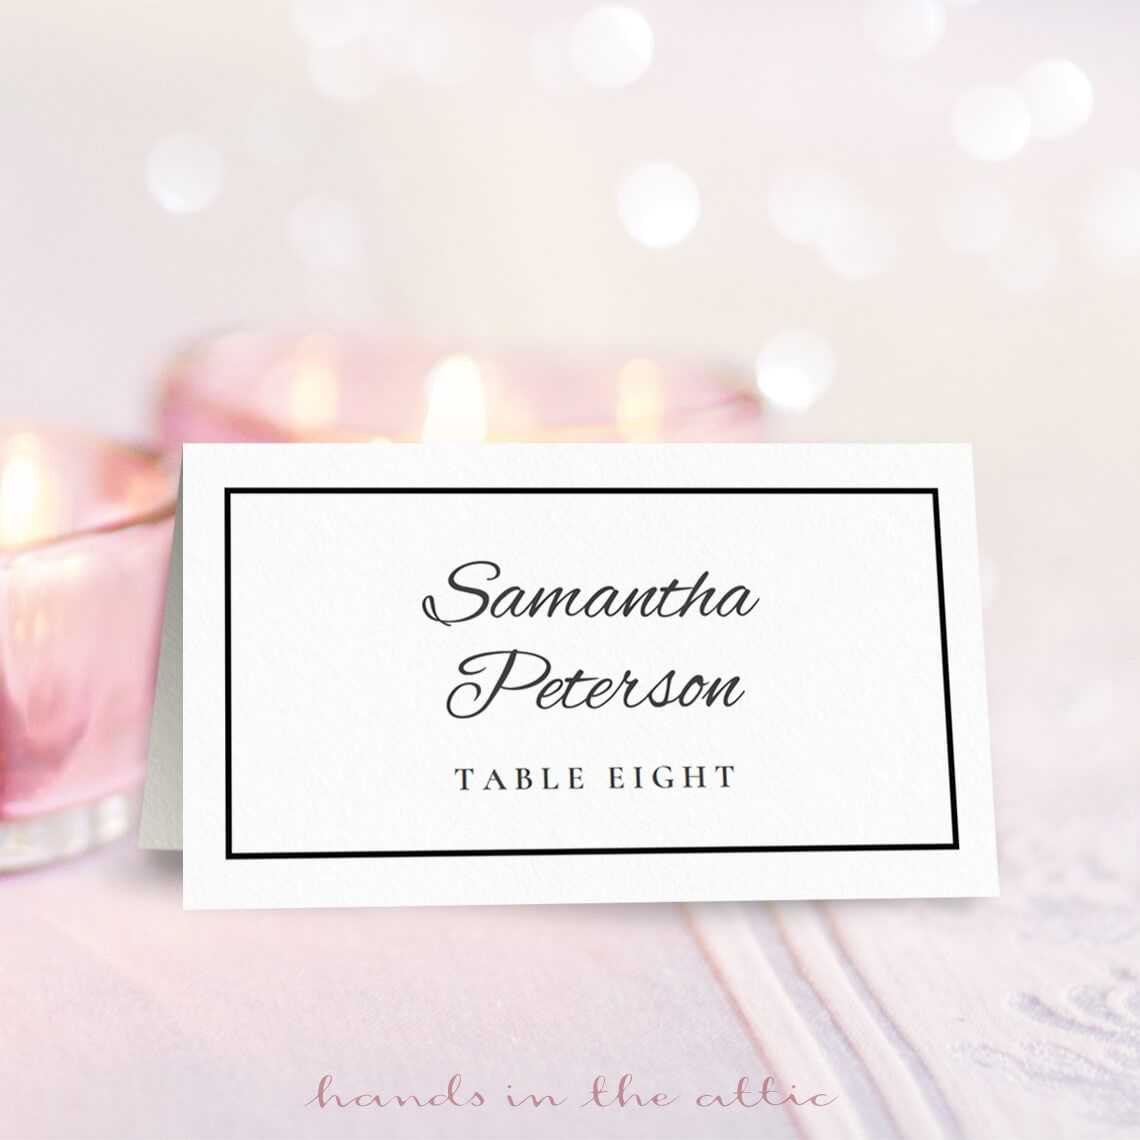 002 Template Ideas For Place Outstanding Cards Wedding Free Pertaining To Free Template For Place Cards 6 Per Sheet